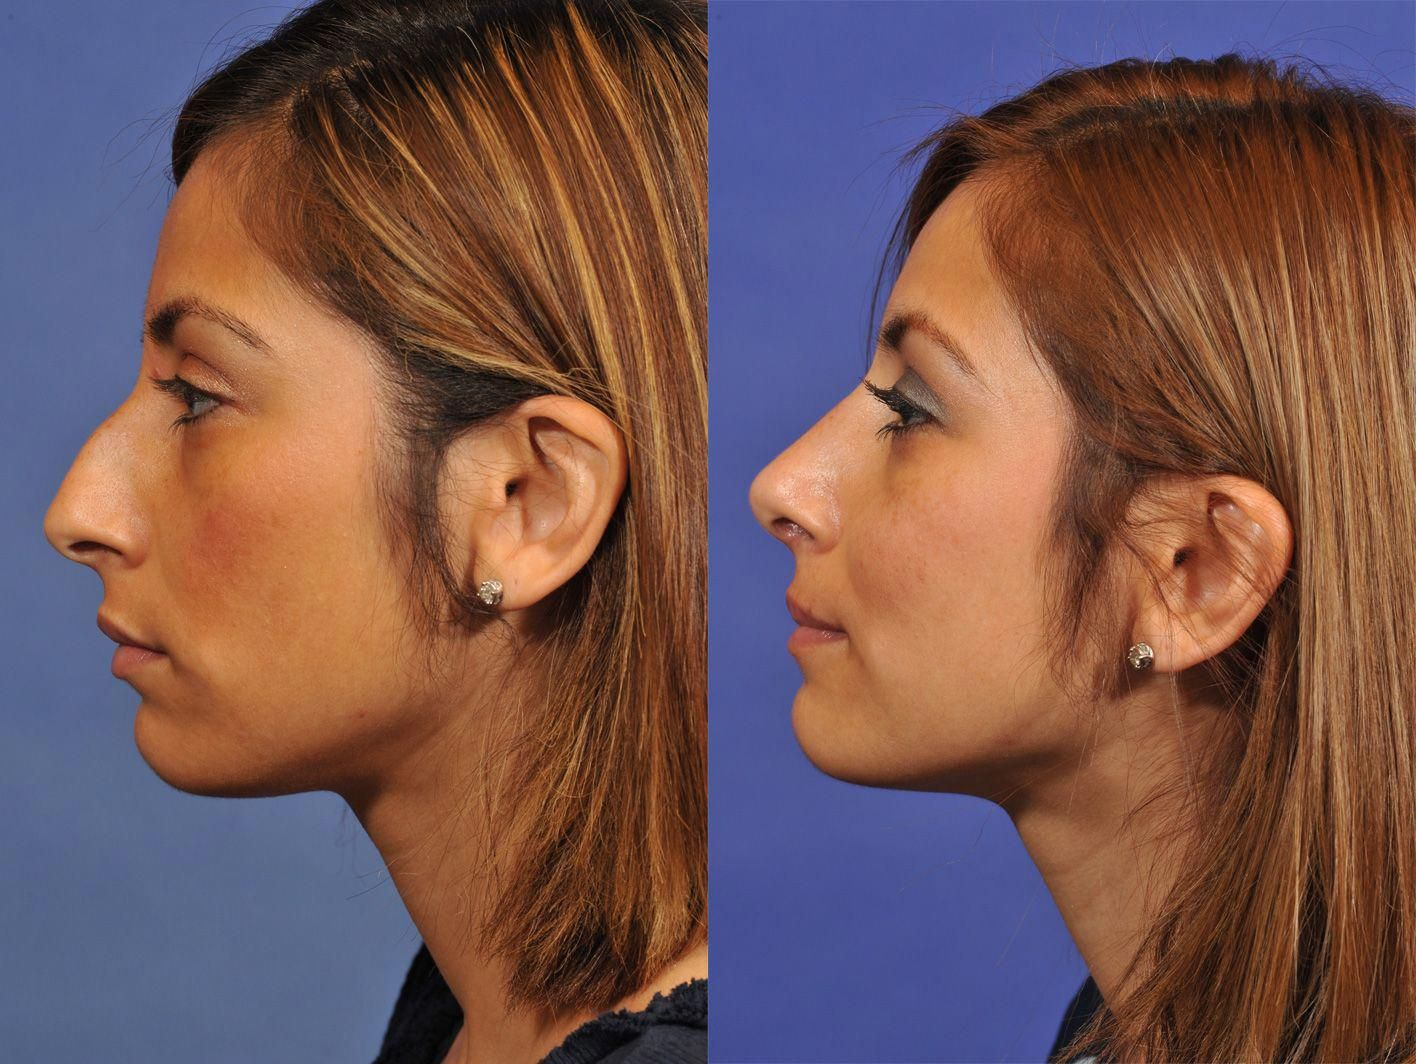 Rhinoplasty Before & After Gallery Jesse E Smith, MD